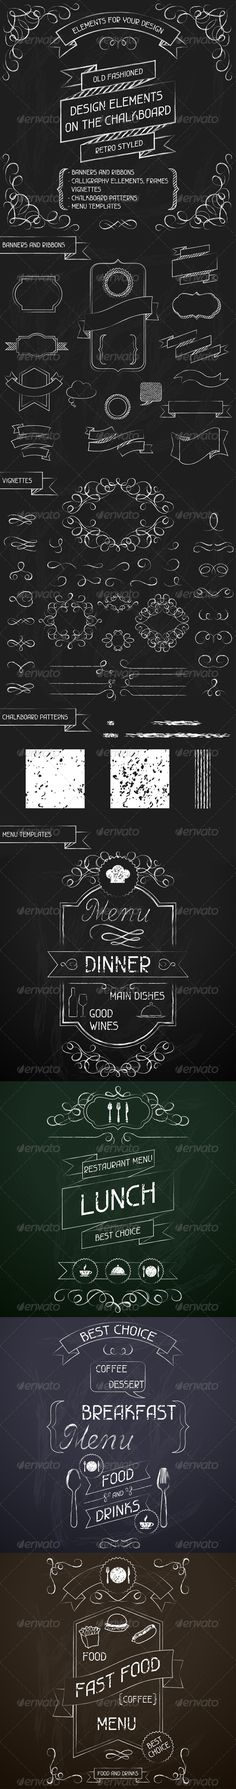 Design elements for a chalkboard.